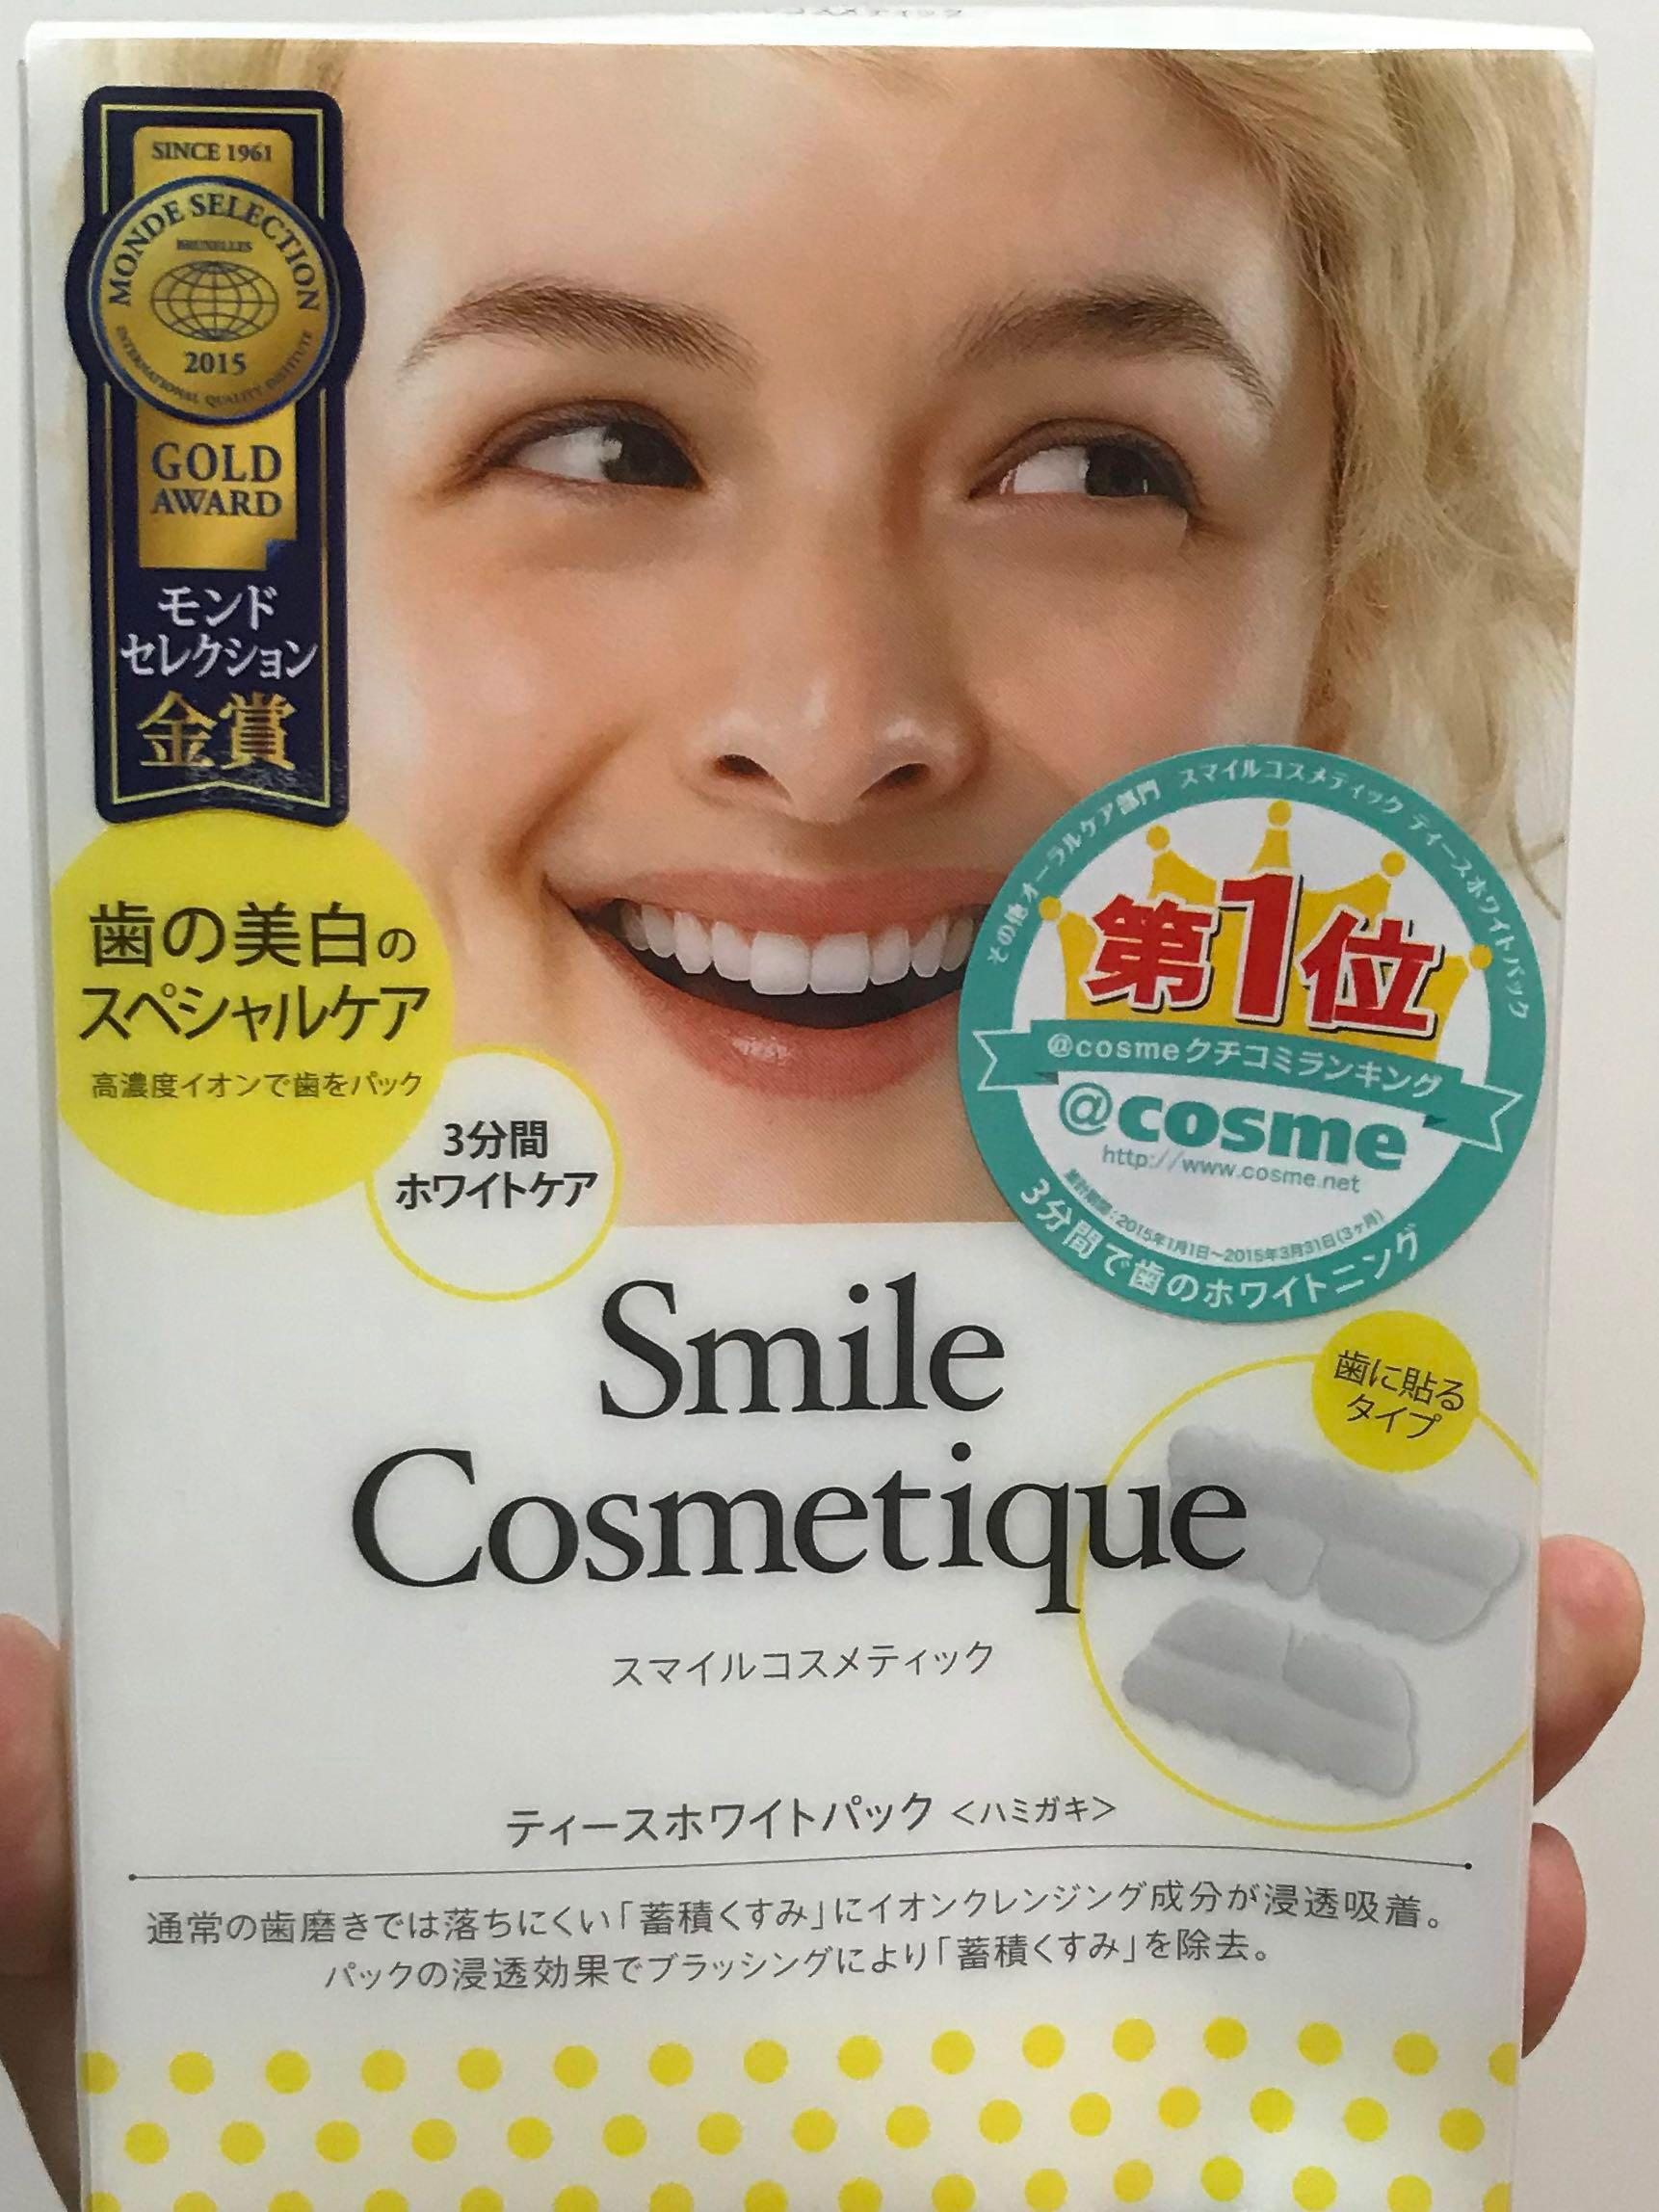 From Japan Smile Cosmeticque Teeth Whitening Health Beauty